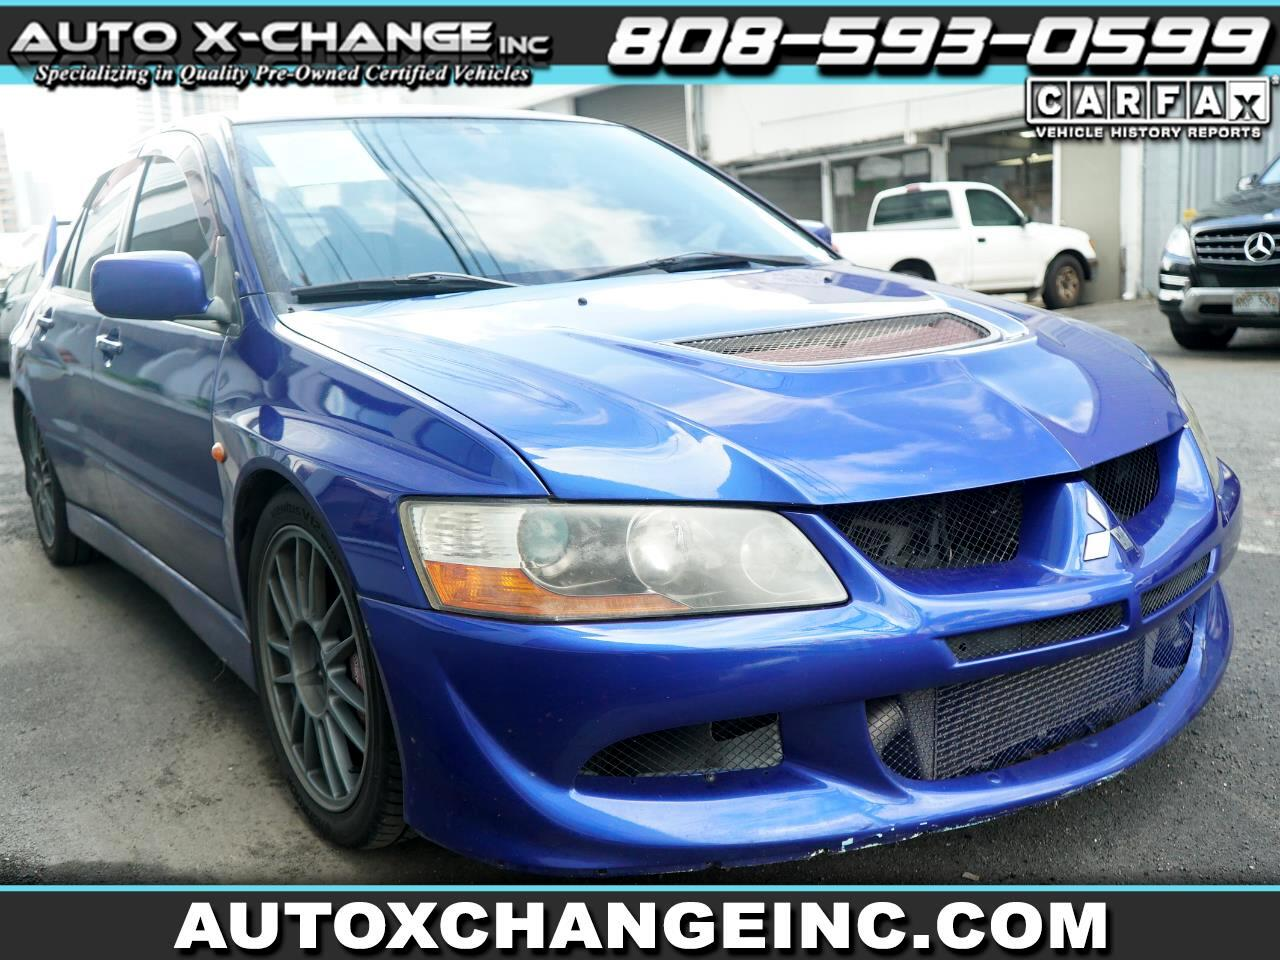 Mitsubishi Lancer 4dr Sdn Evolution VIII Manual 2005